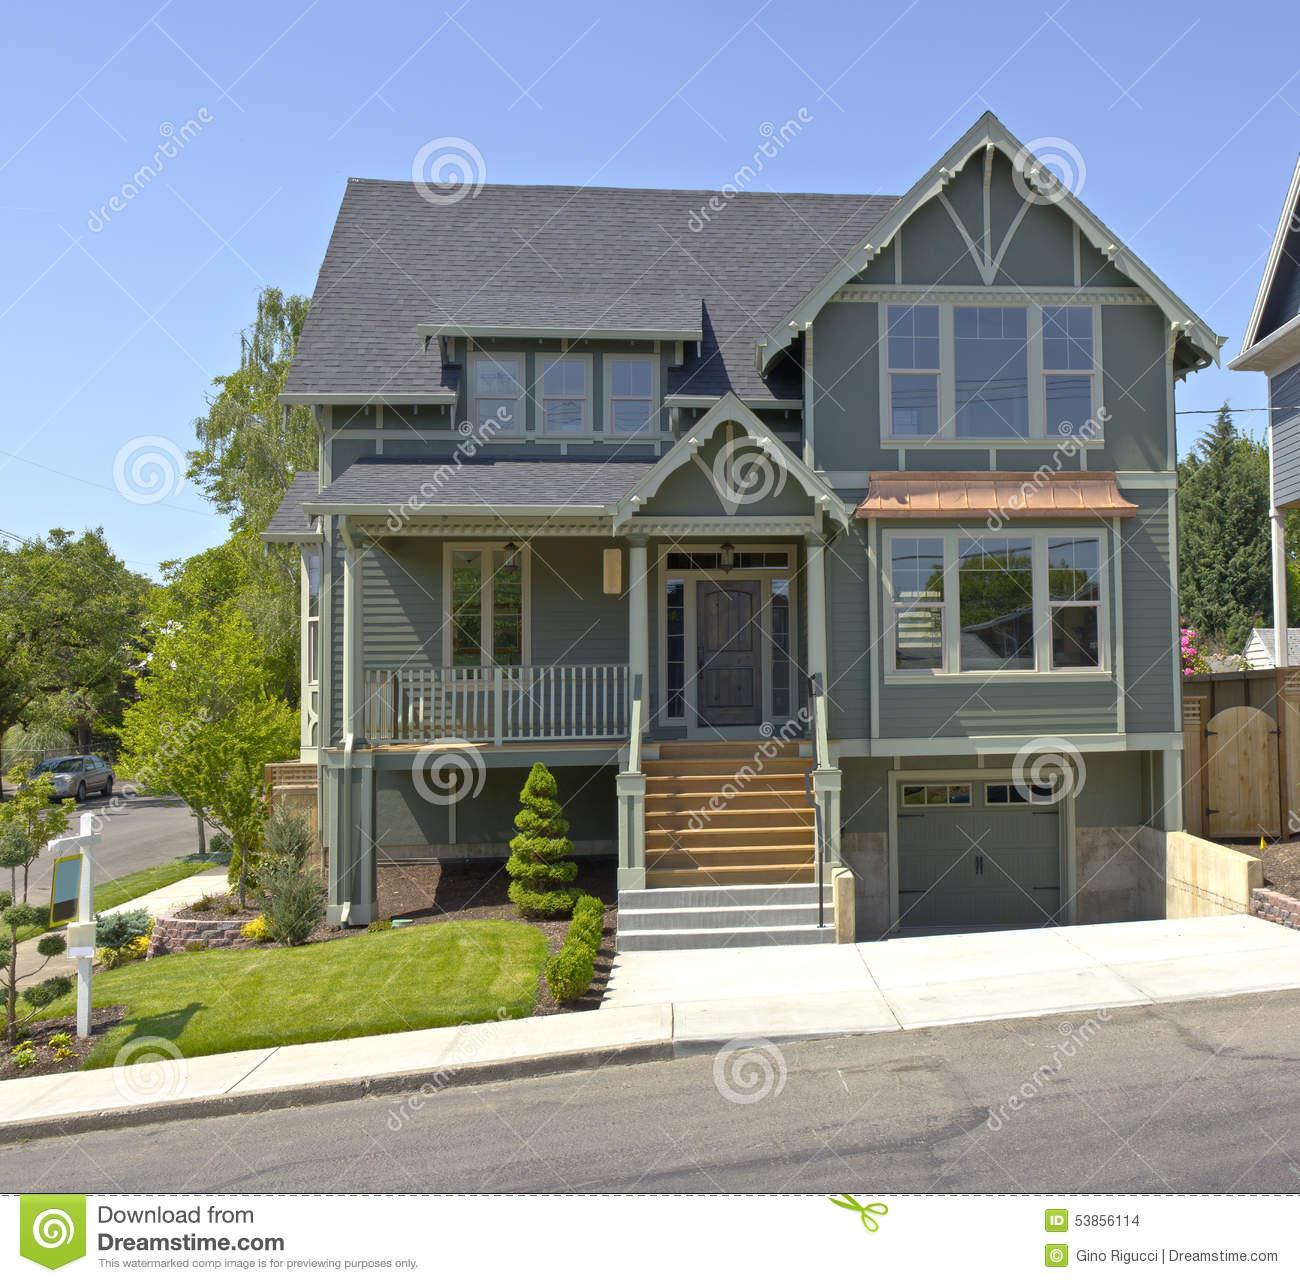 New house for sale portland oregon stock photo image for Building a home in oregon